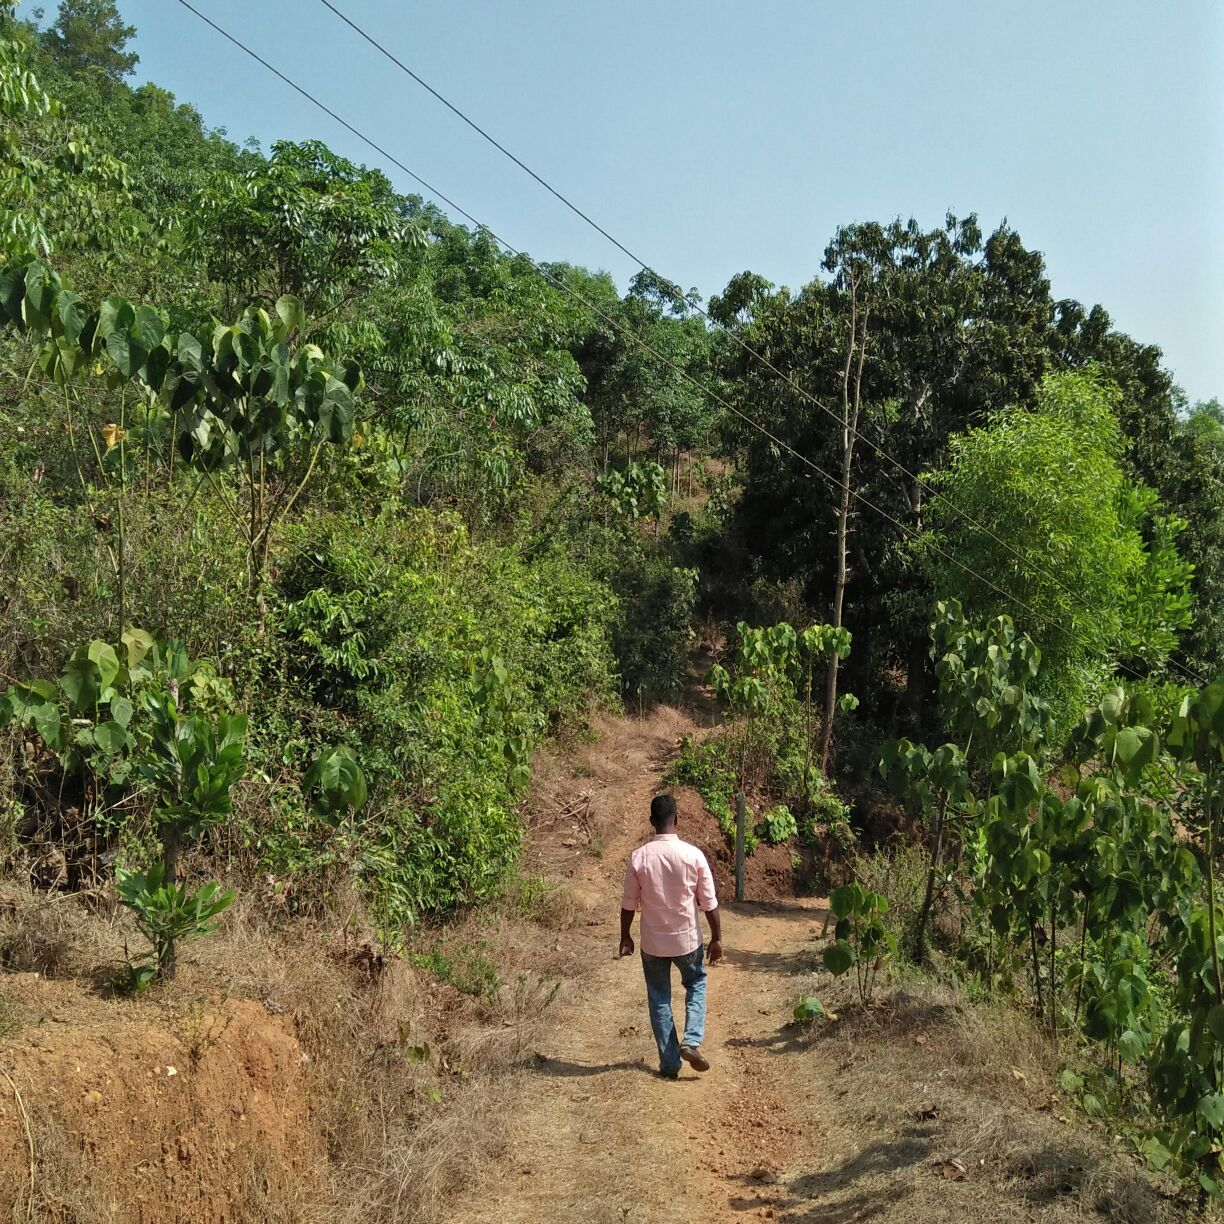 1 5 Acre Of Land Rubber Plantation With 3 Years Old Rubber